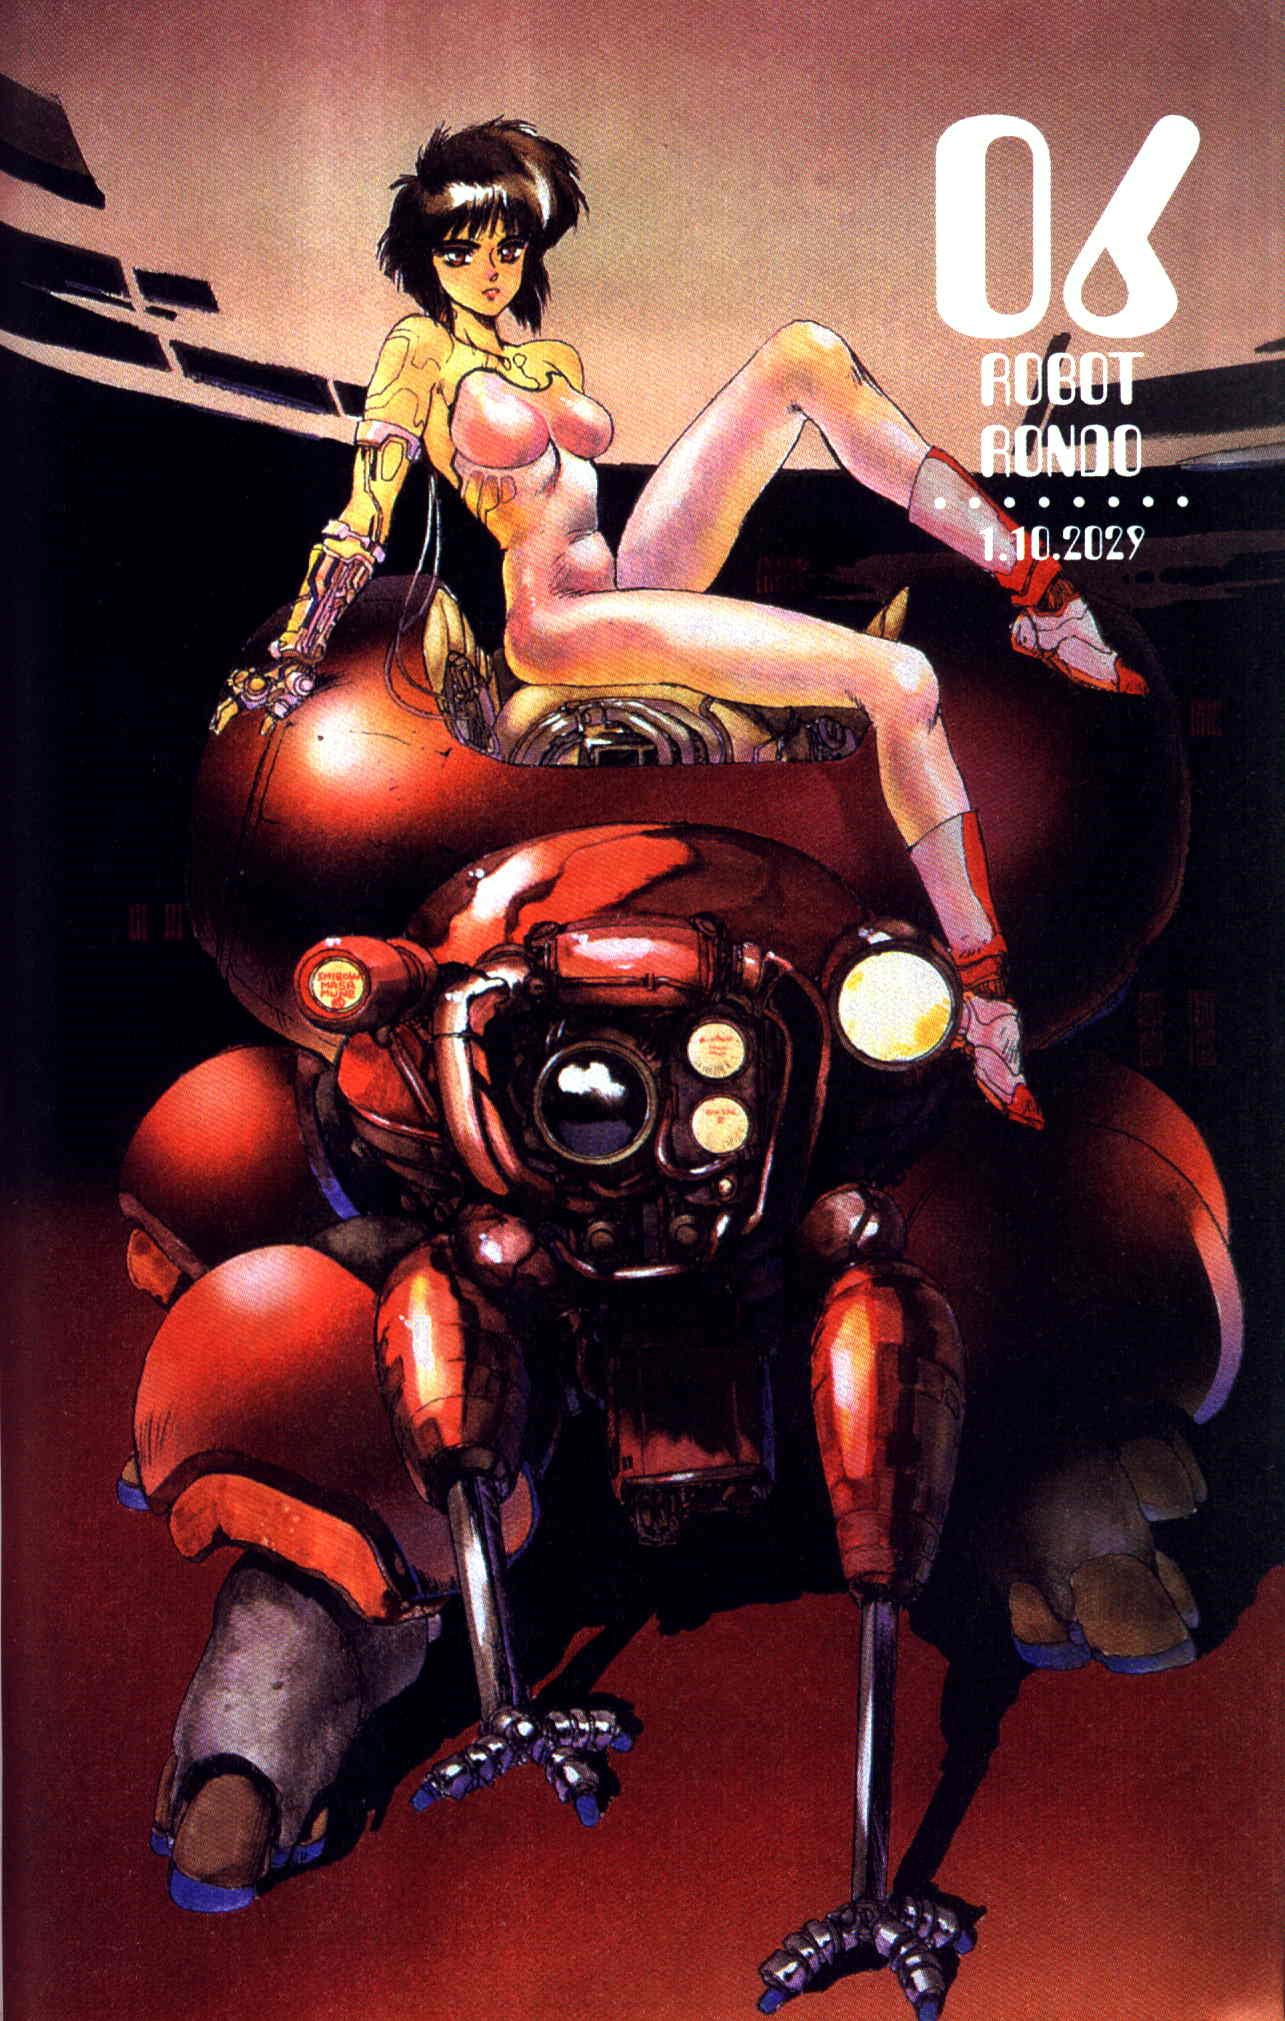 Ghost In The Shell Manga Image Anime Fans Of Moddb Ghost In The Shell Anime Cyberpunk Anime